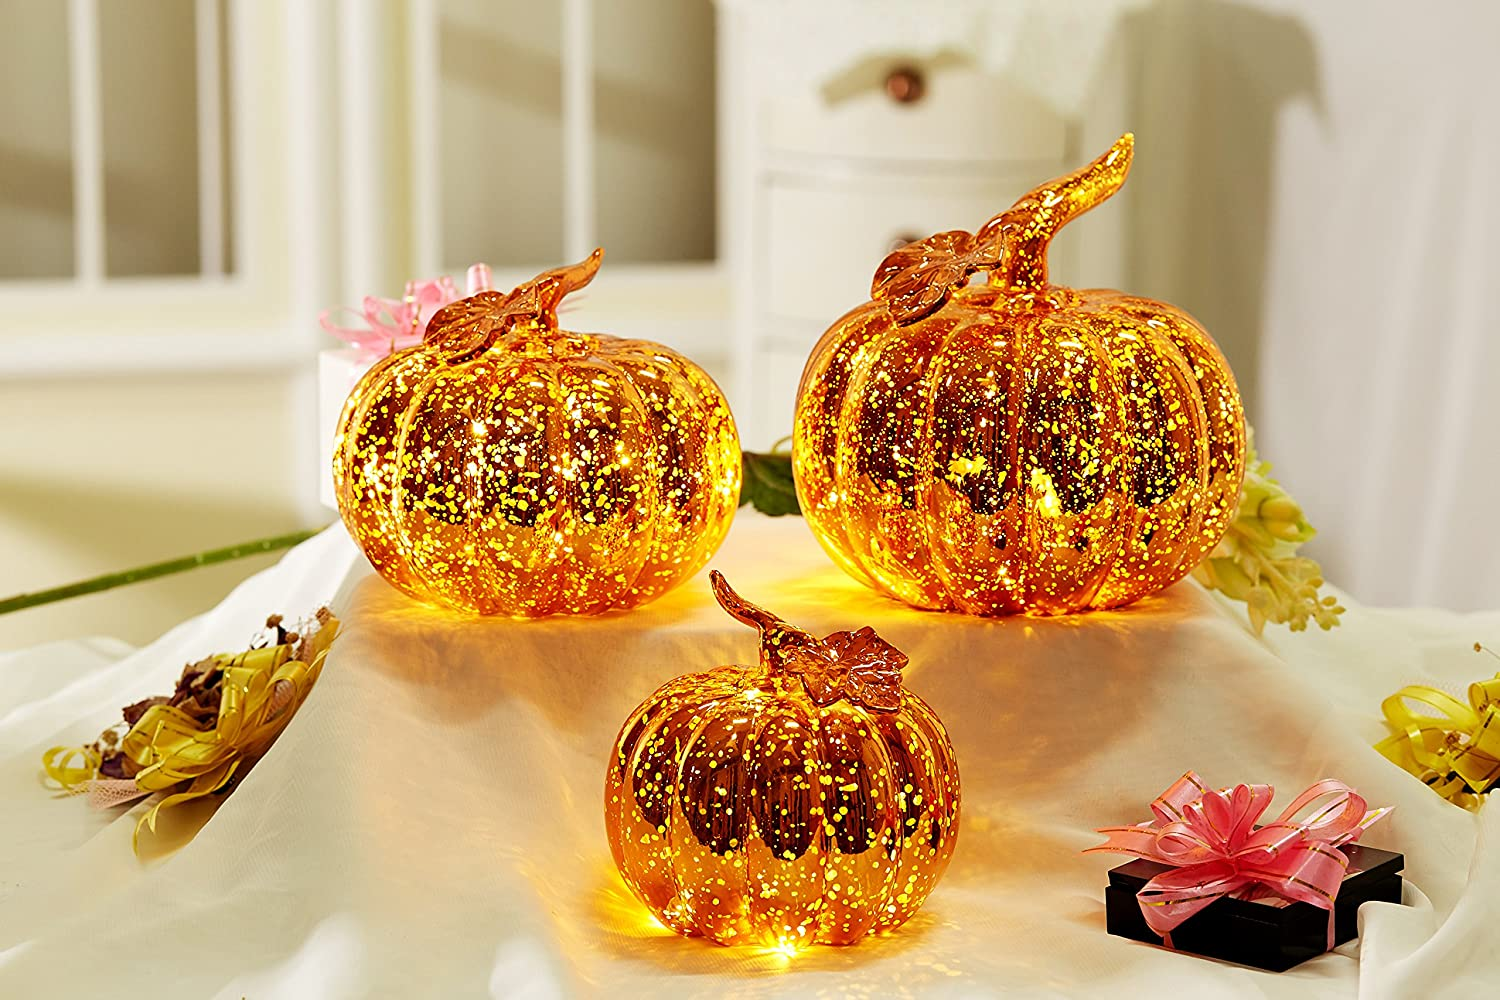 Youseexmas Lighting up Thanksgiving Mercury Glass Halloween Pumpkin Jack O' Lantern with Timer Pack of 3